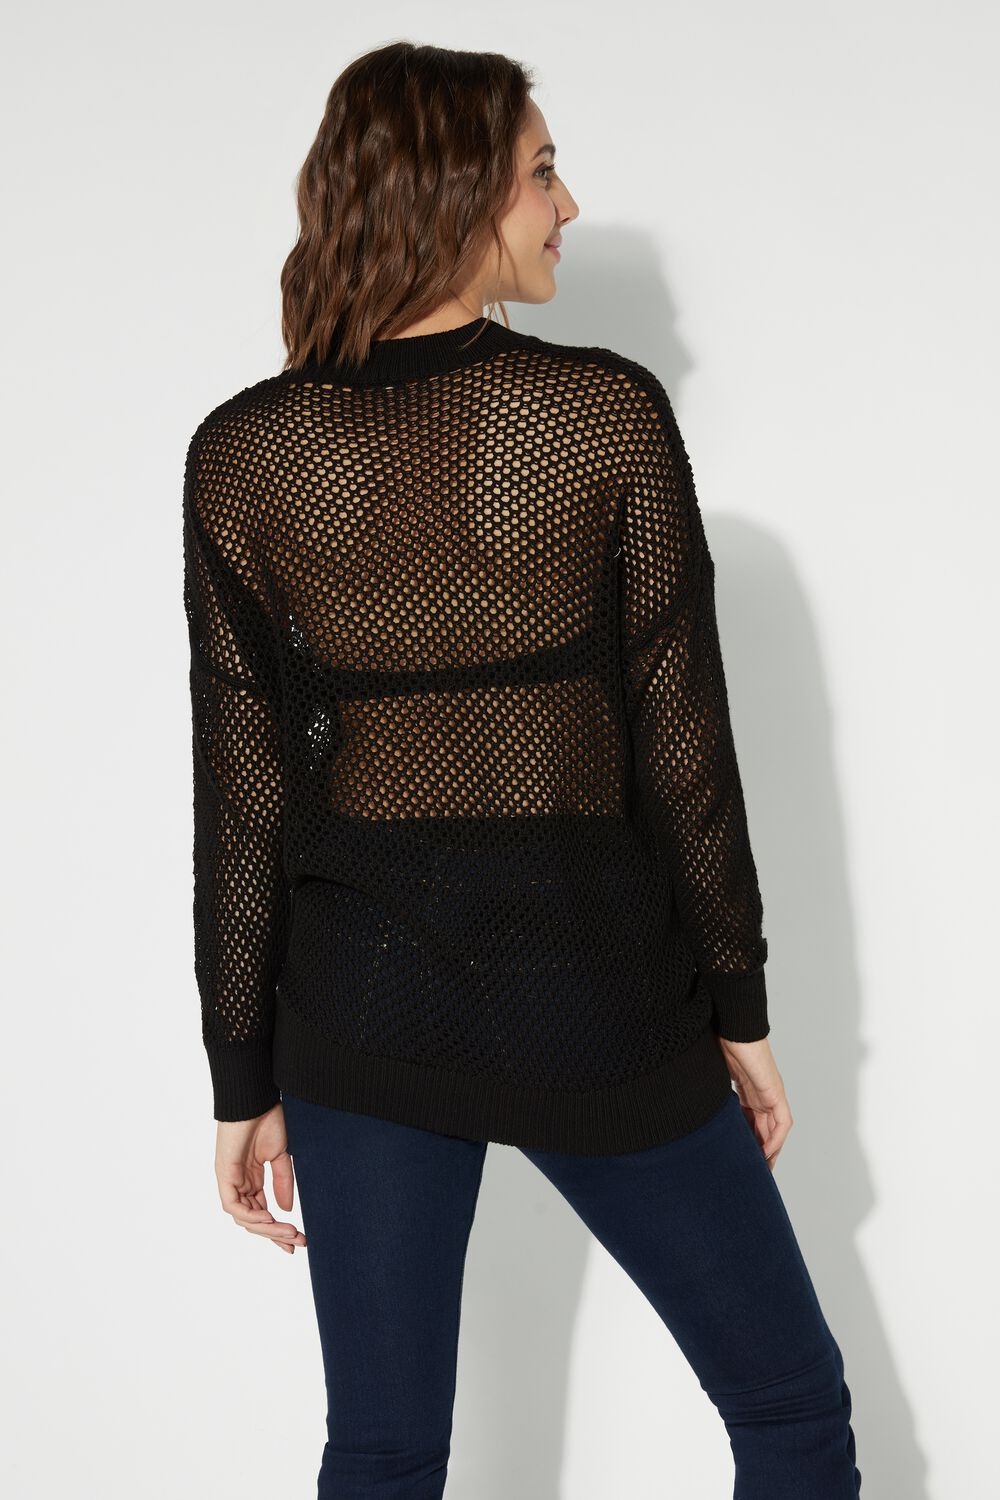 Long-Sleeved Fully-Fashioned Wide Mesh Top